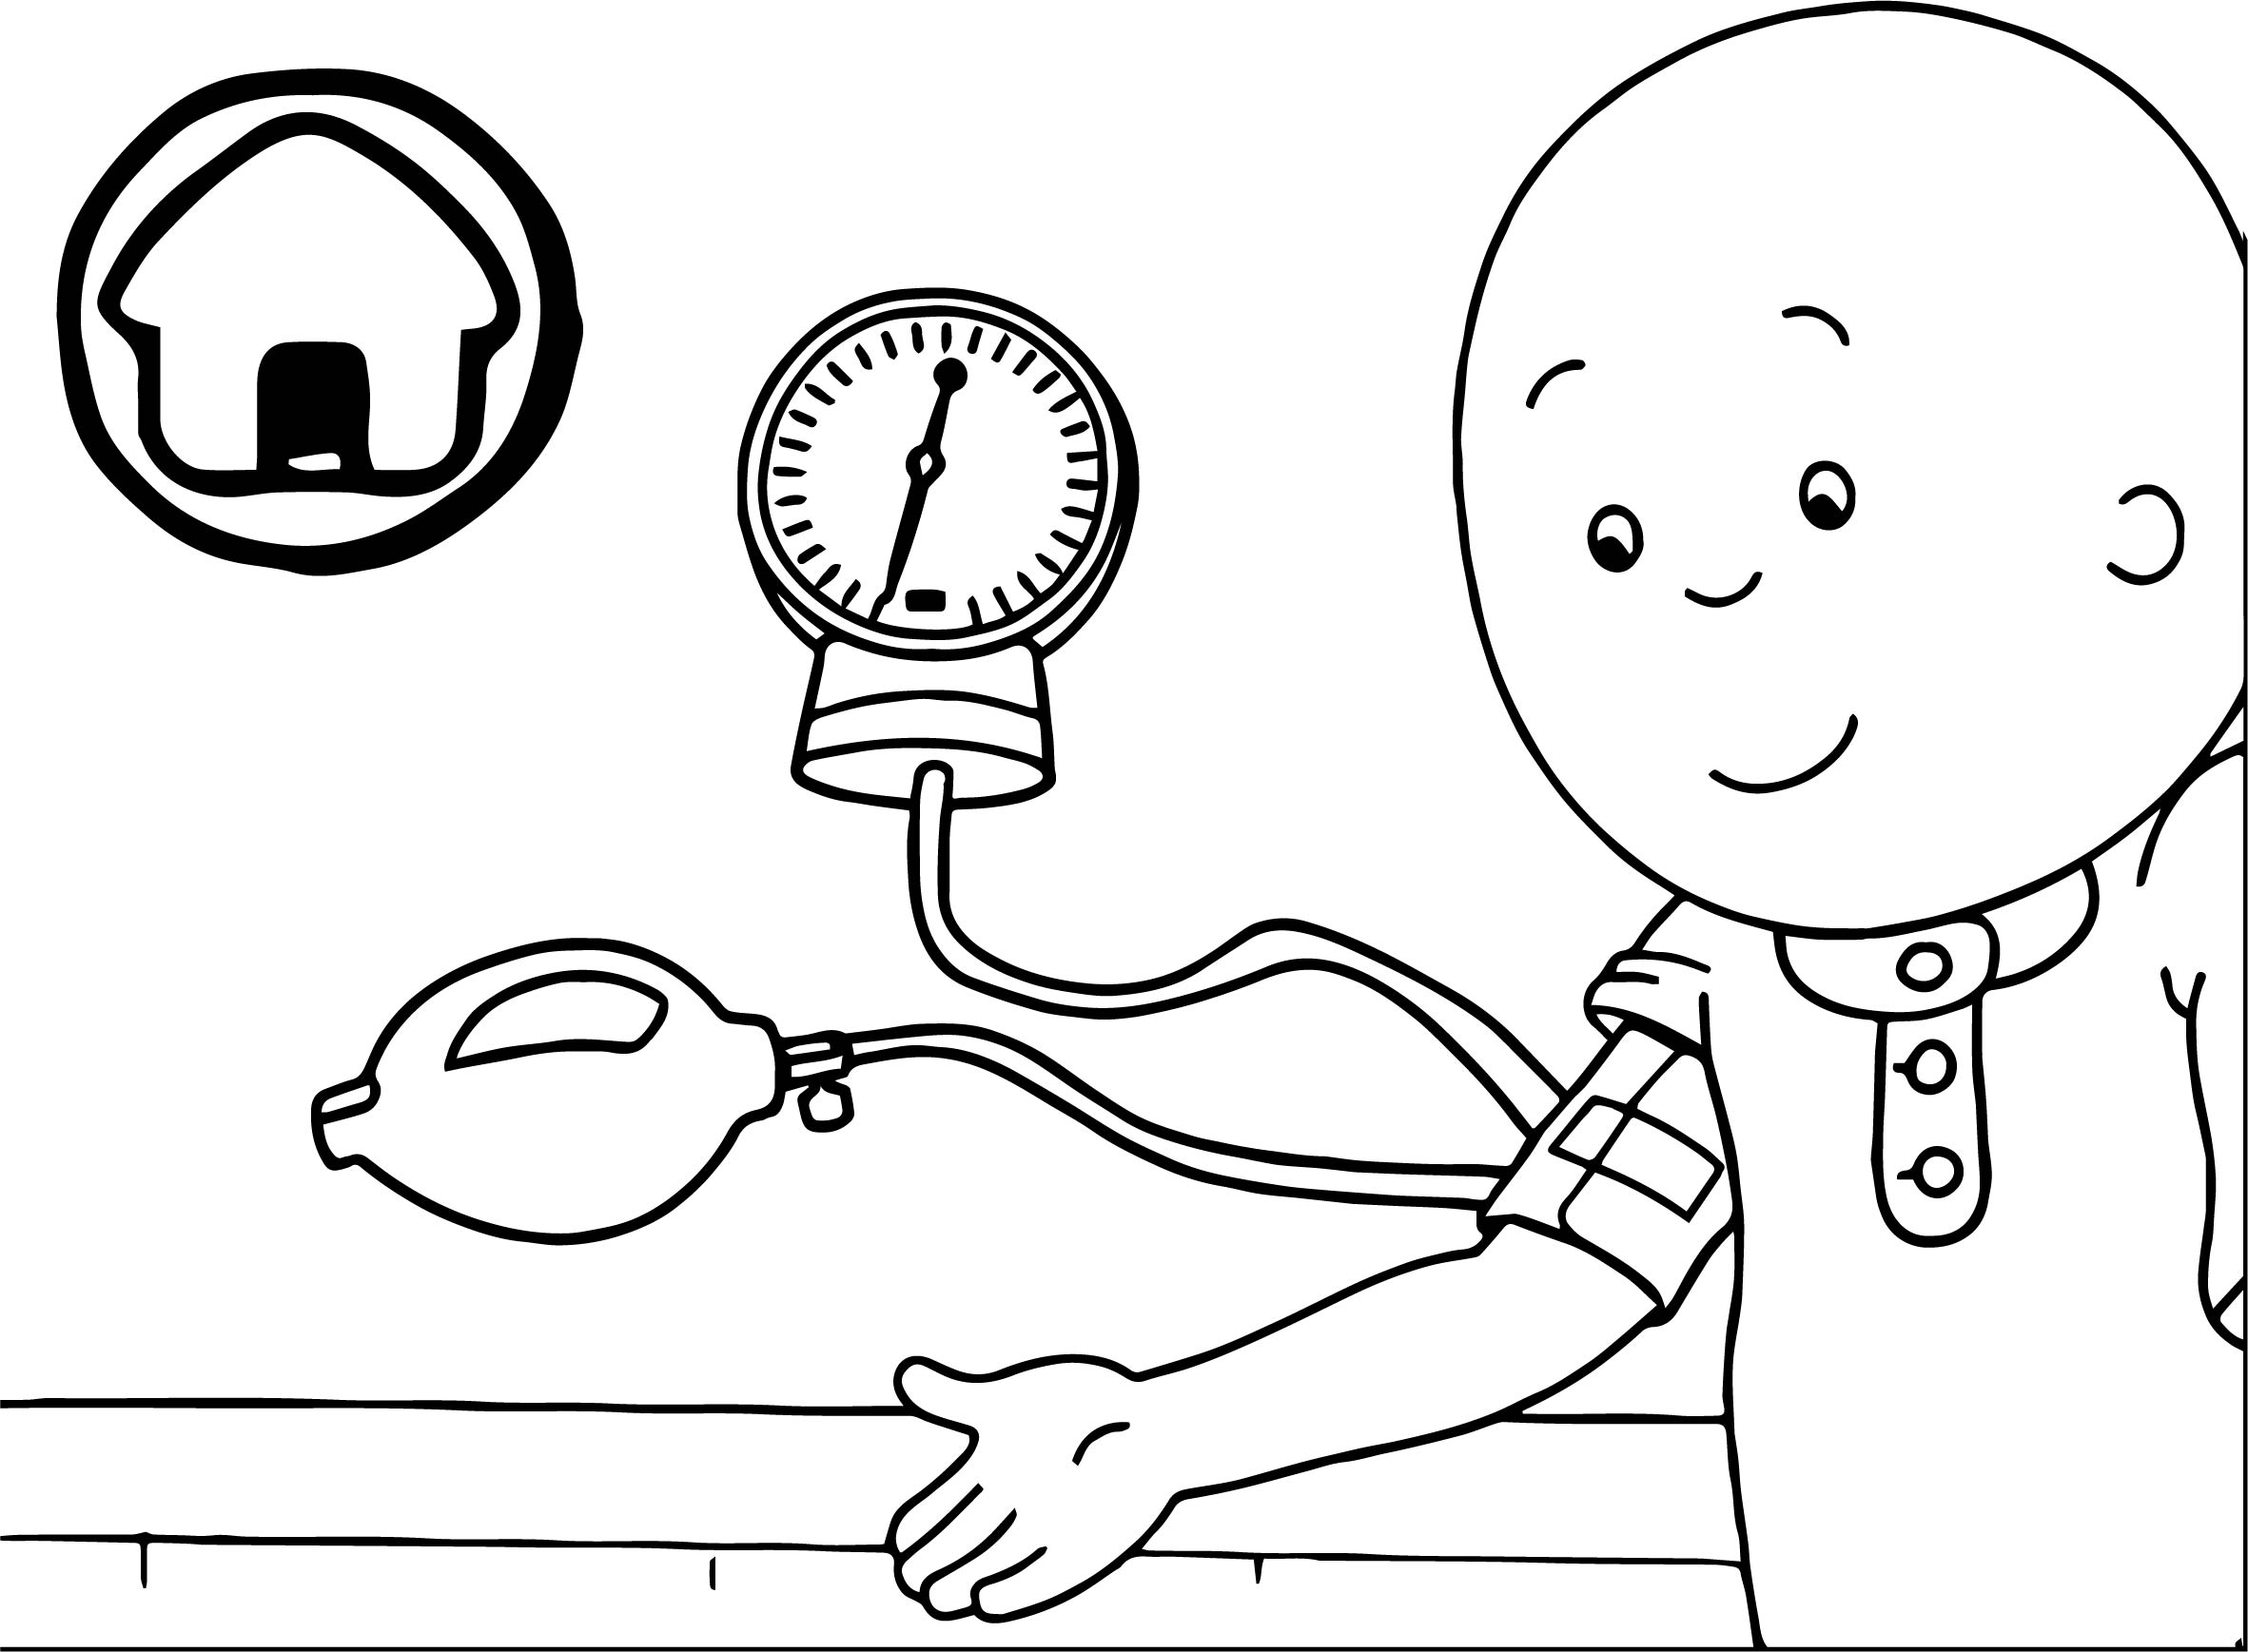 caillou check up doctor coloring page - Doctor Coloring Page